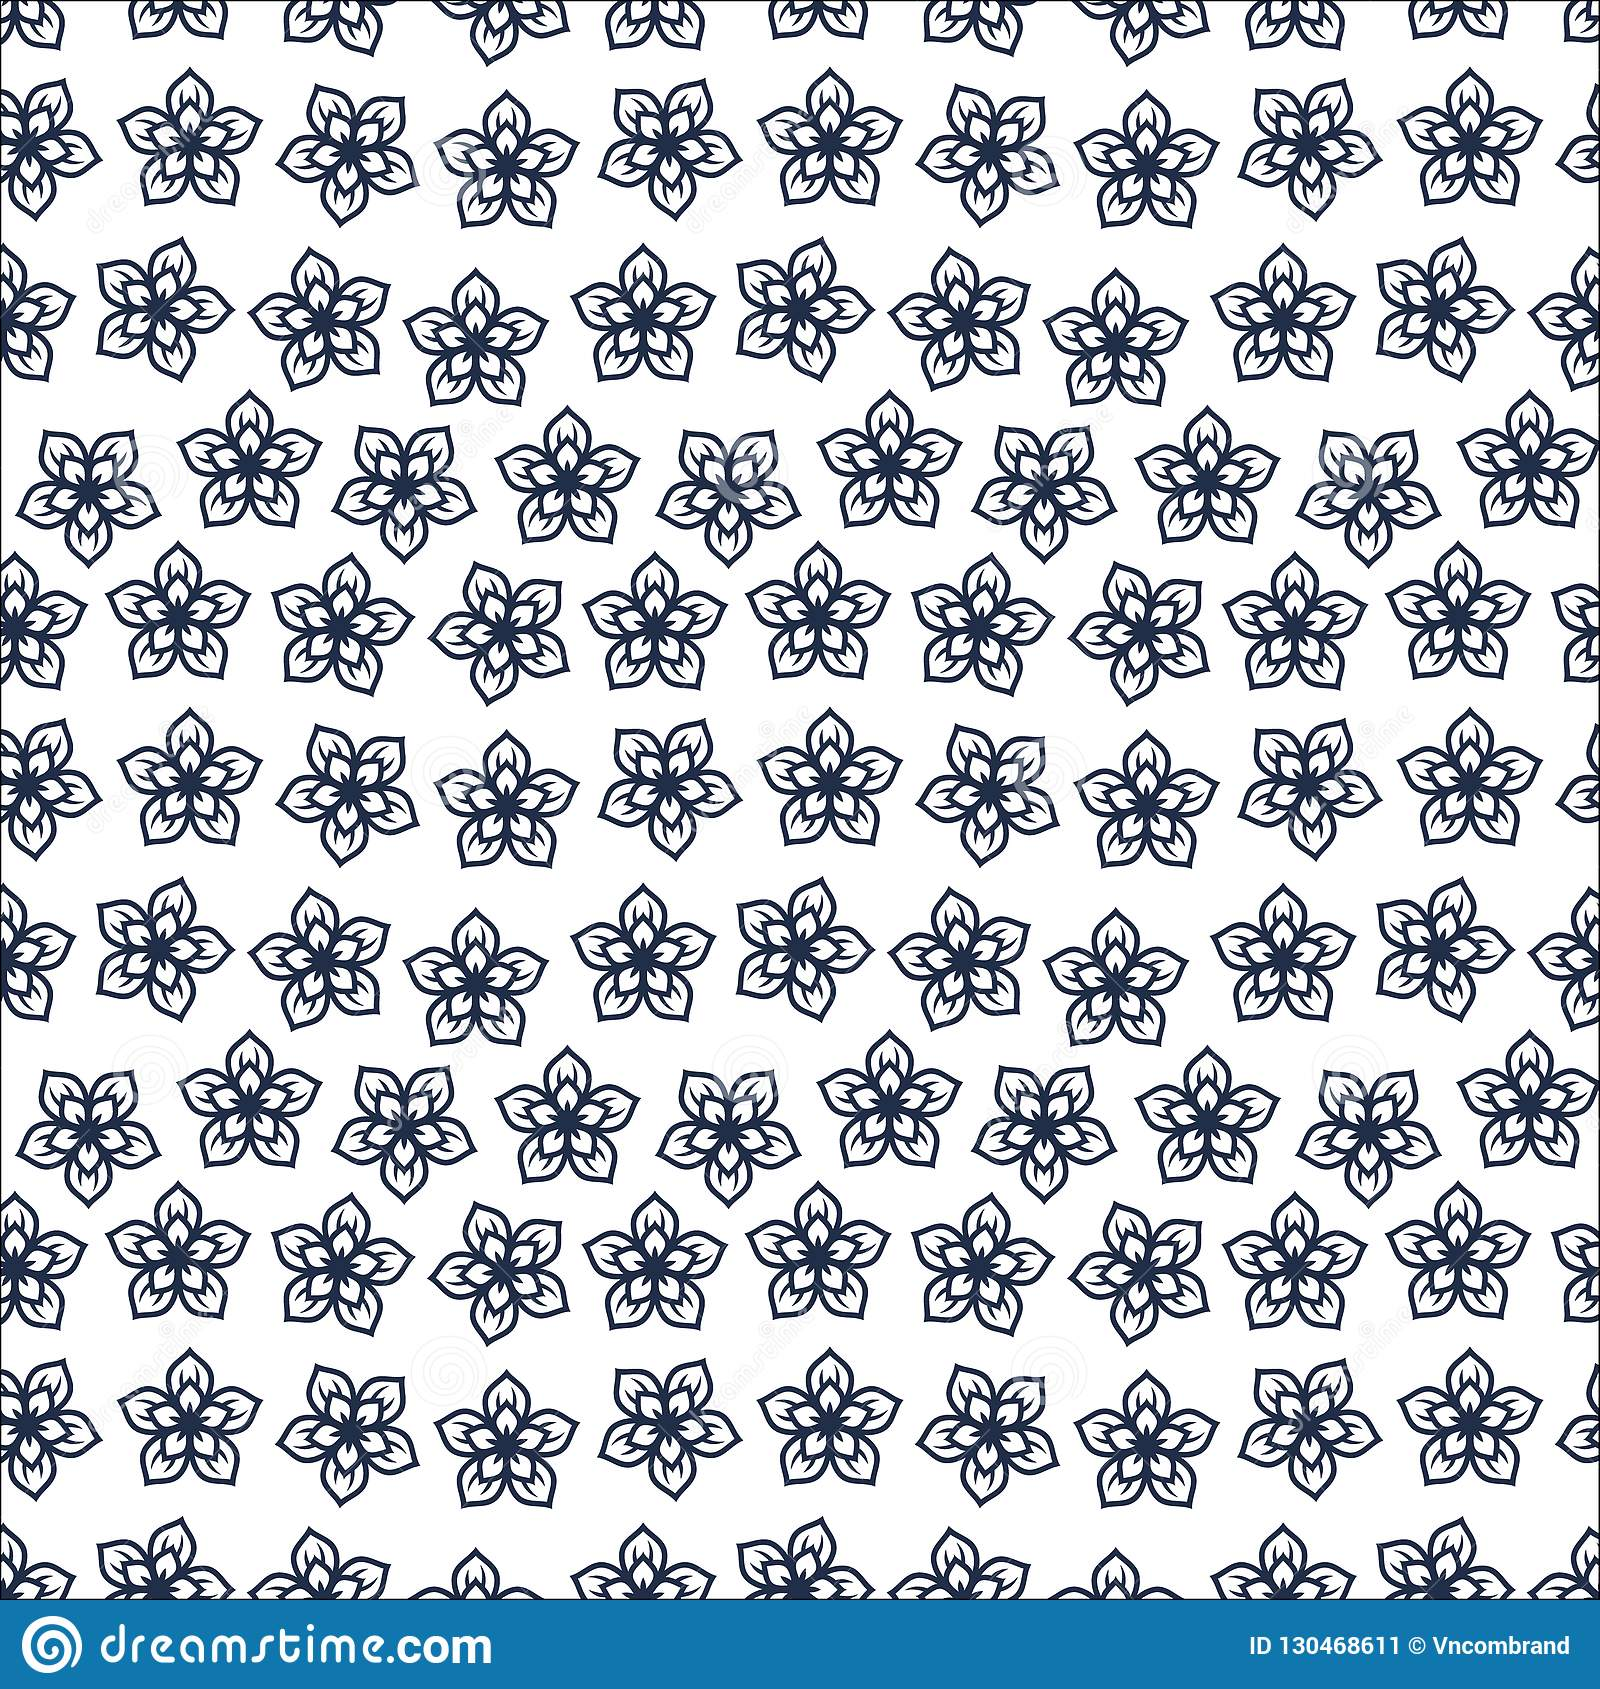 cute floral pattern in the small flower motifs scattered random